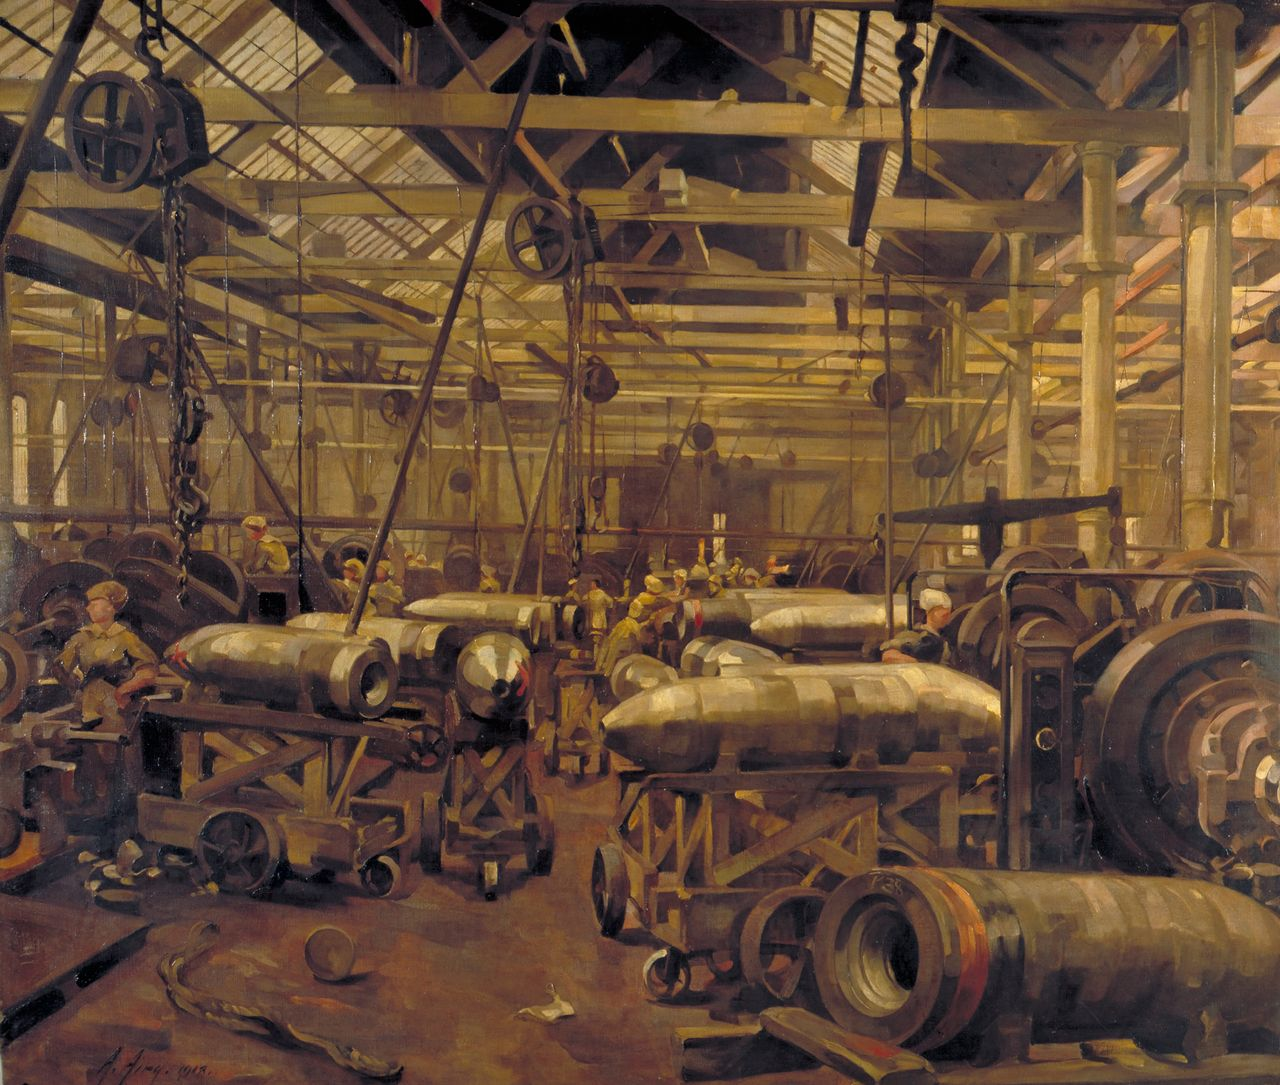 Anna Airy, Shop for Machining 15-inch Shells: Singer Manufacturing Company, Clydebank, Glasgow, 1918